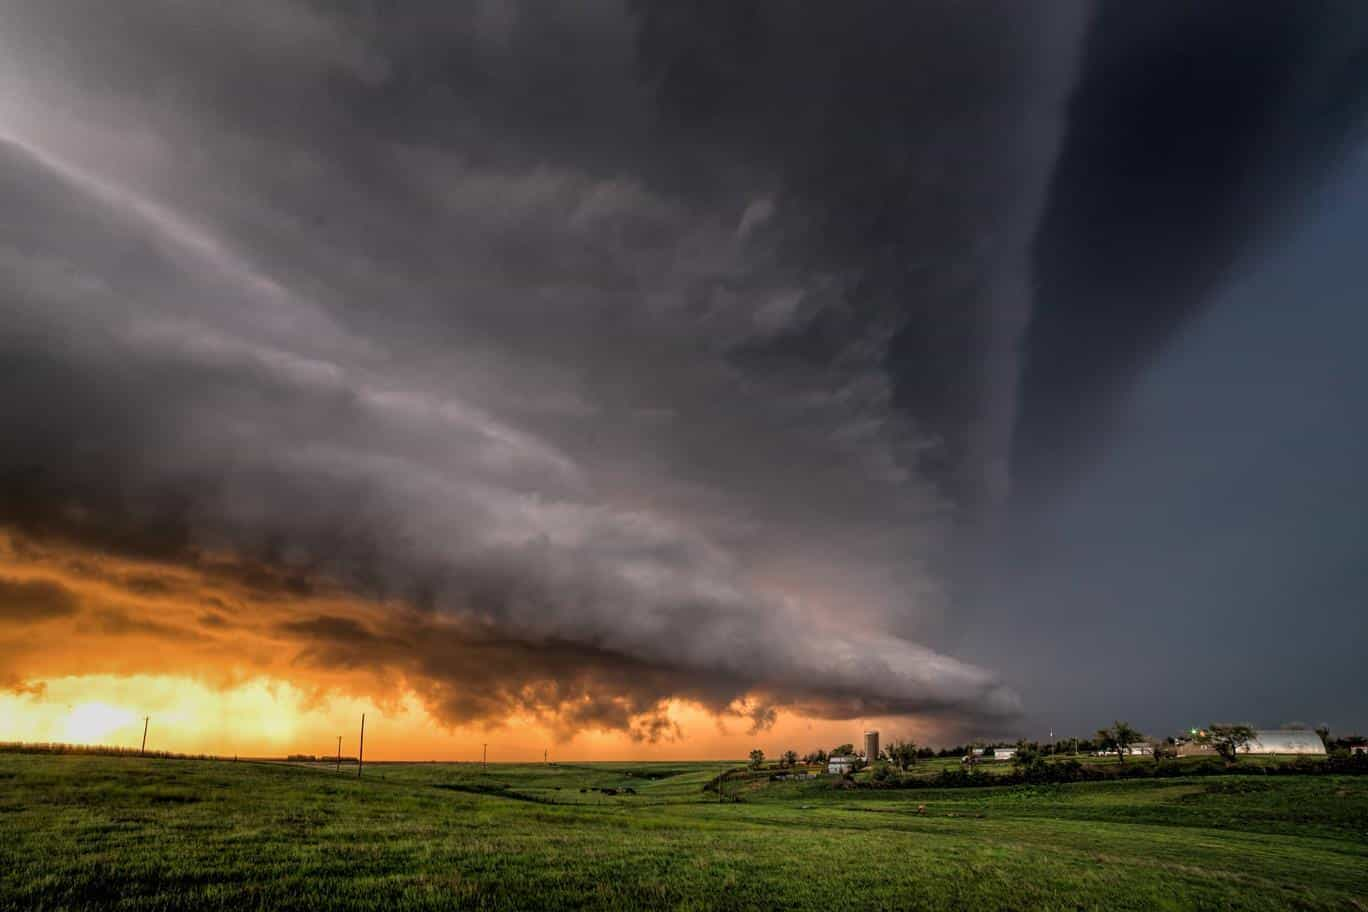 This was one of the most humbling and beautiful storm scenes I have witnessed. Leoti, KS. last Saturday.